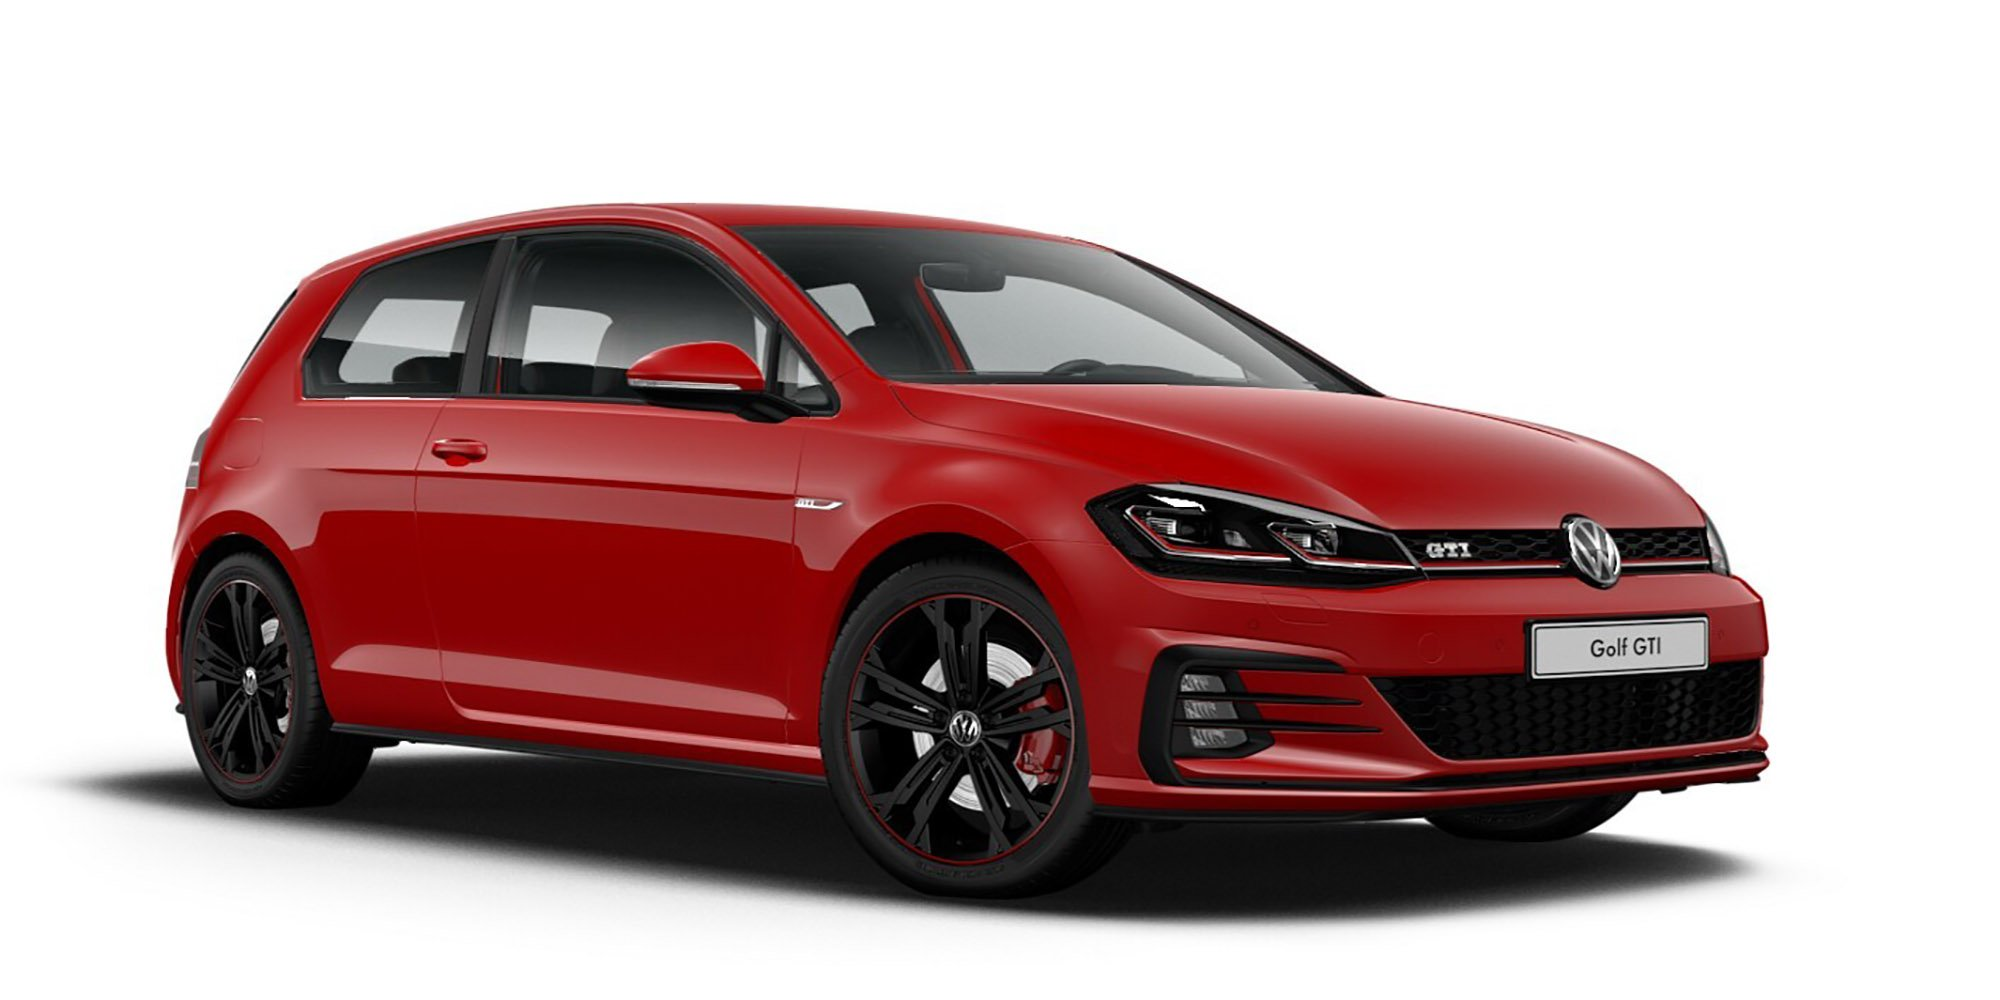 2018 volkswagen golf gti original golf r grid pricing and specs here in january photos 1 of 12. Black Bedroom Furniture Sets. Home Design Ideas